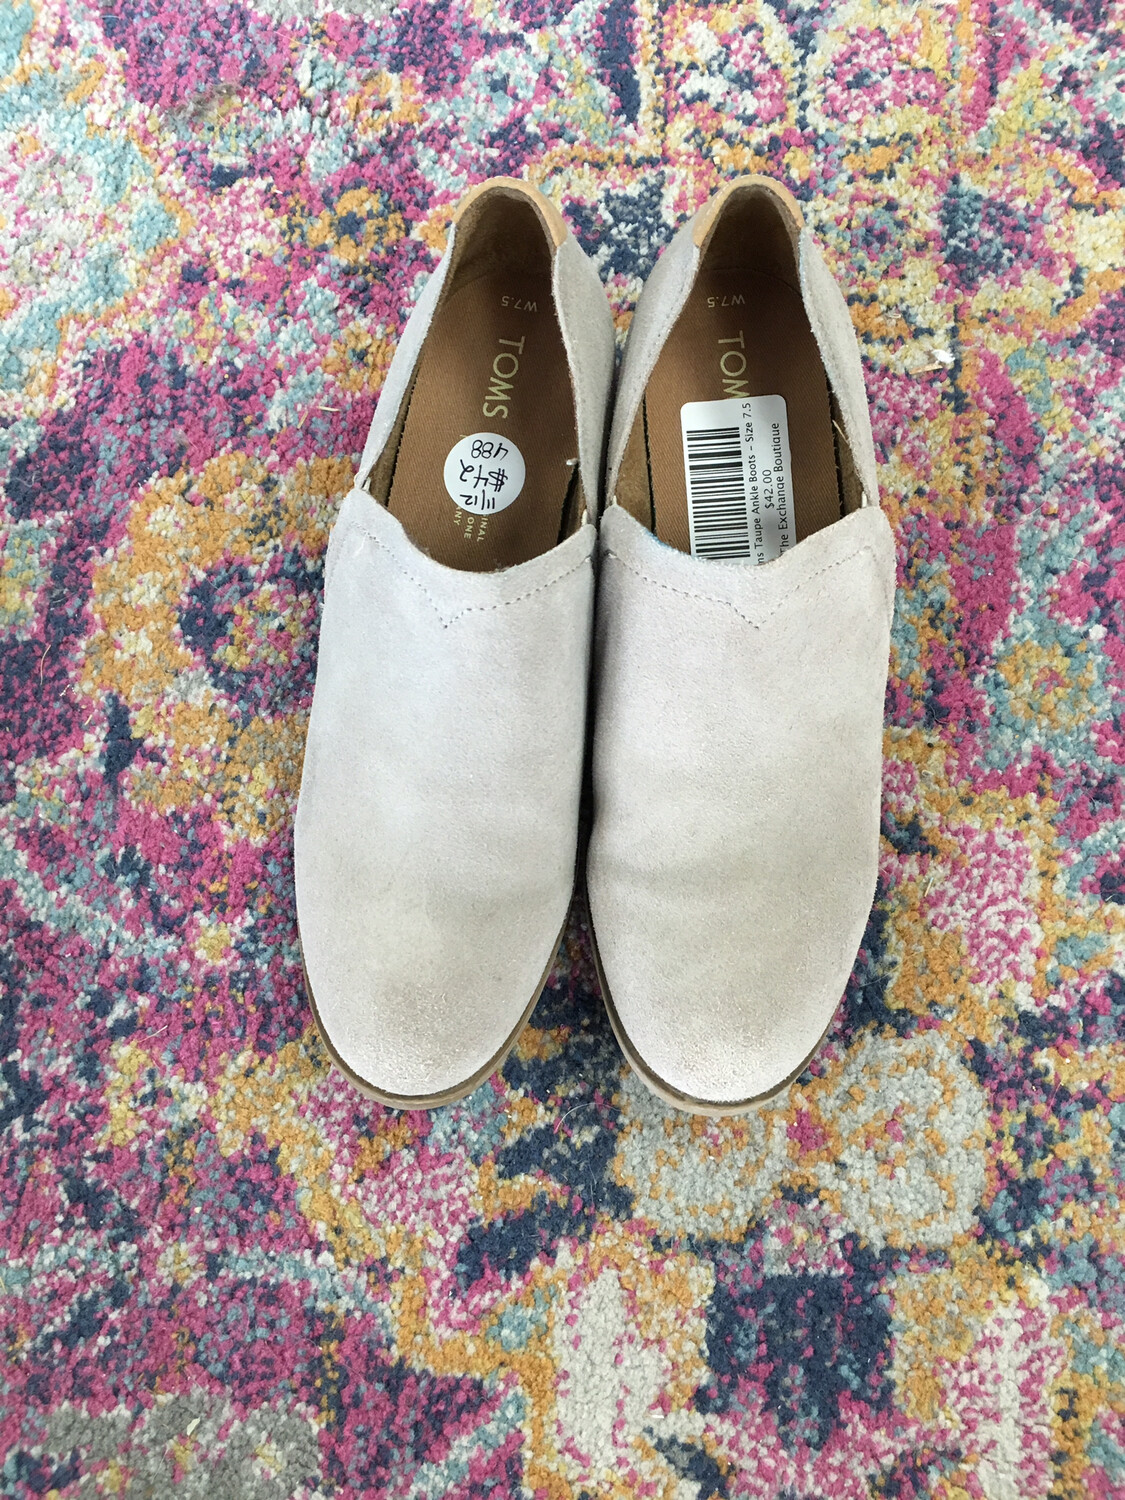 Toms Taupe Ankle Boots - Size 7.5